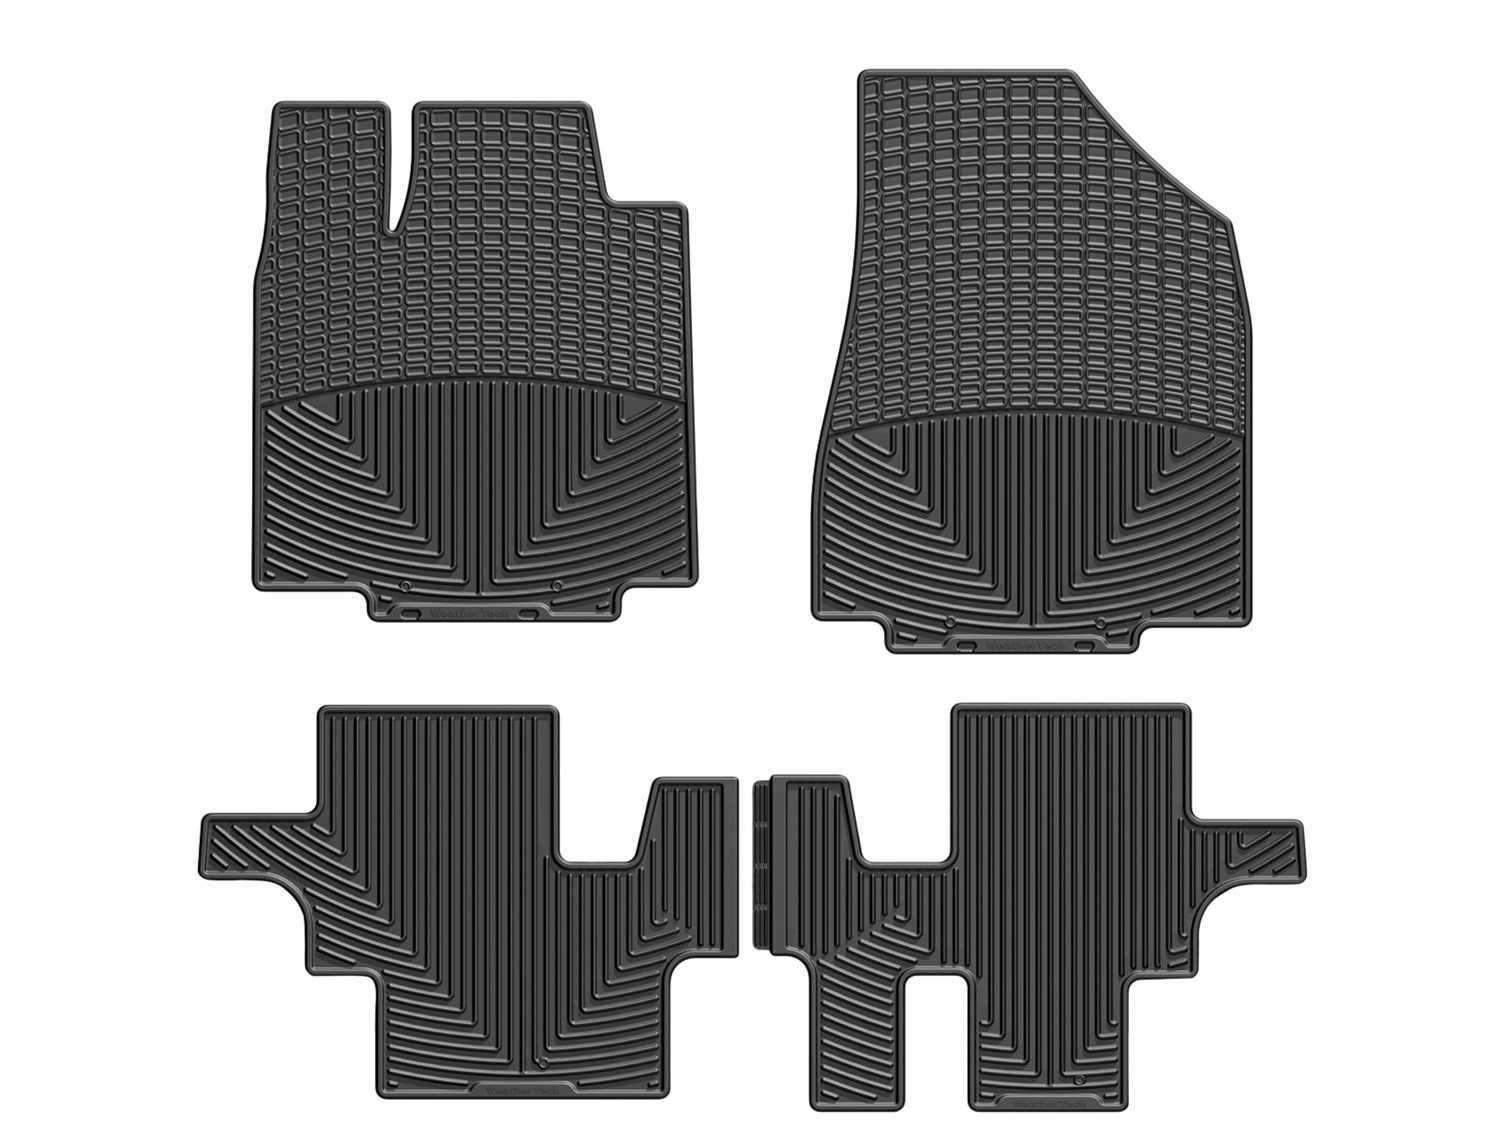 WTCB996080 WeatherTech All Weather Floor Mats